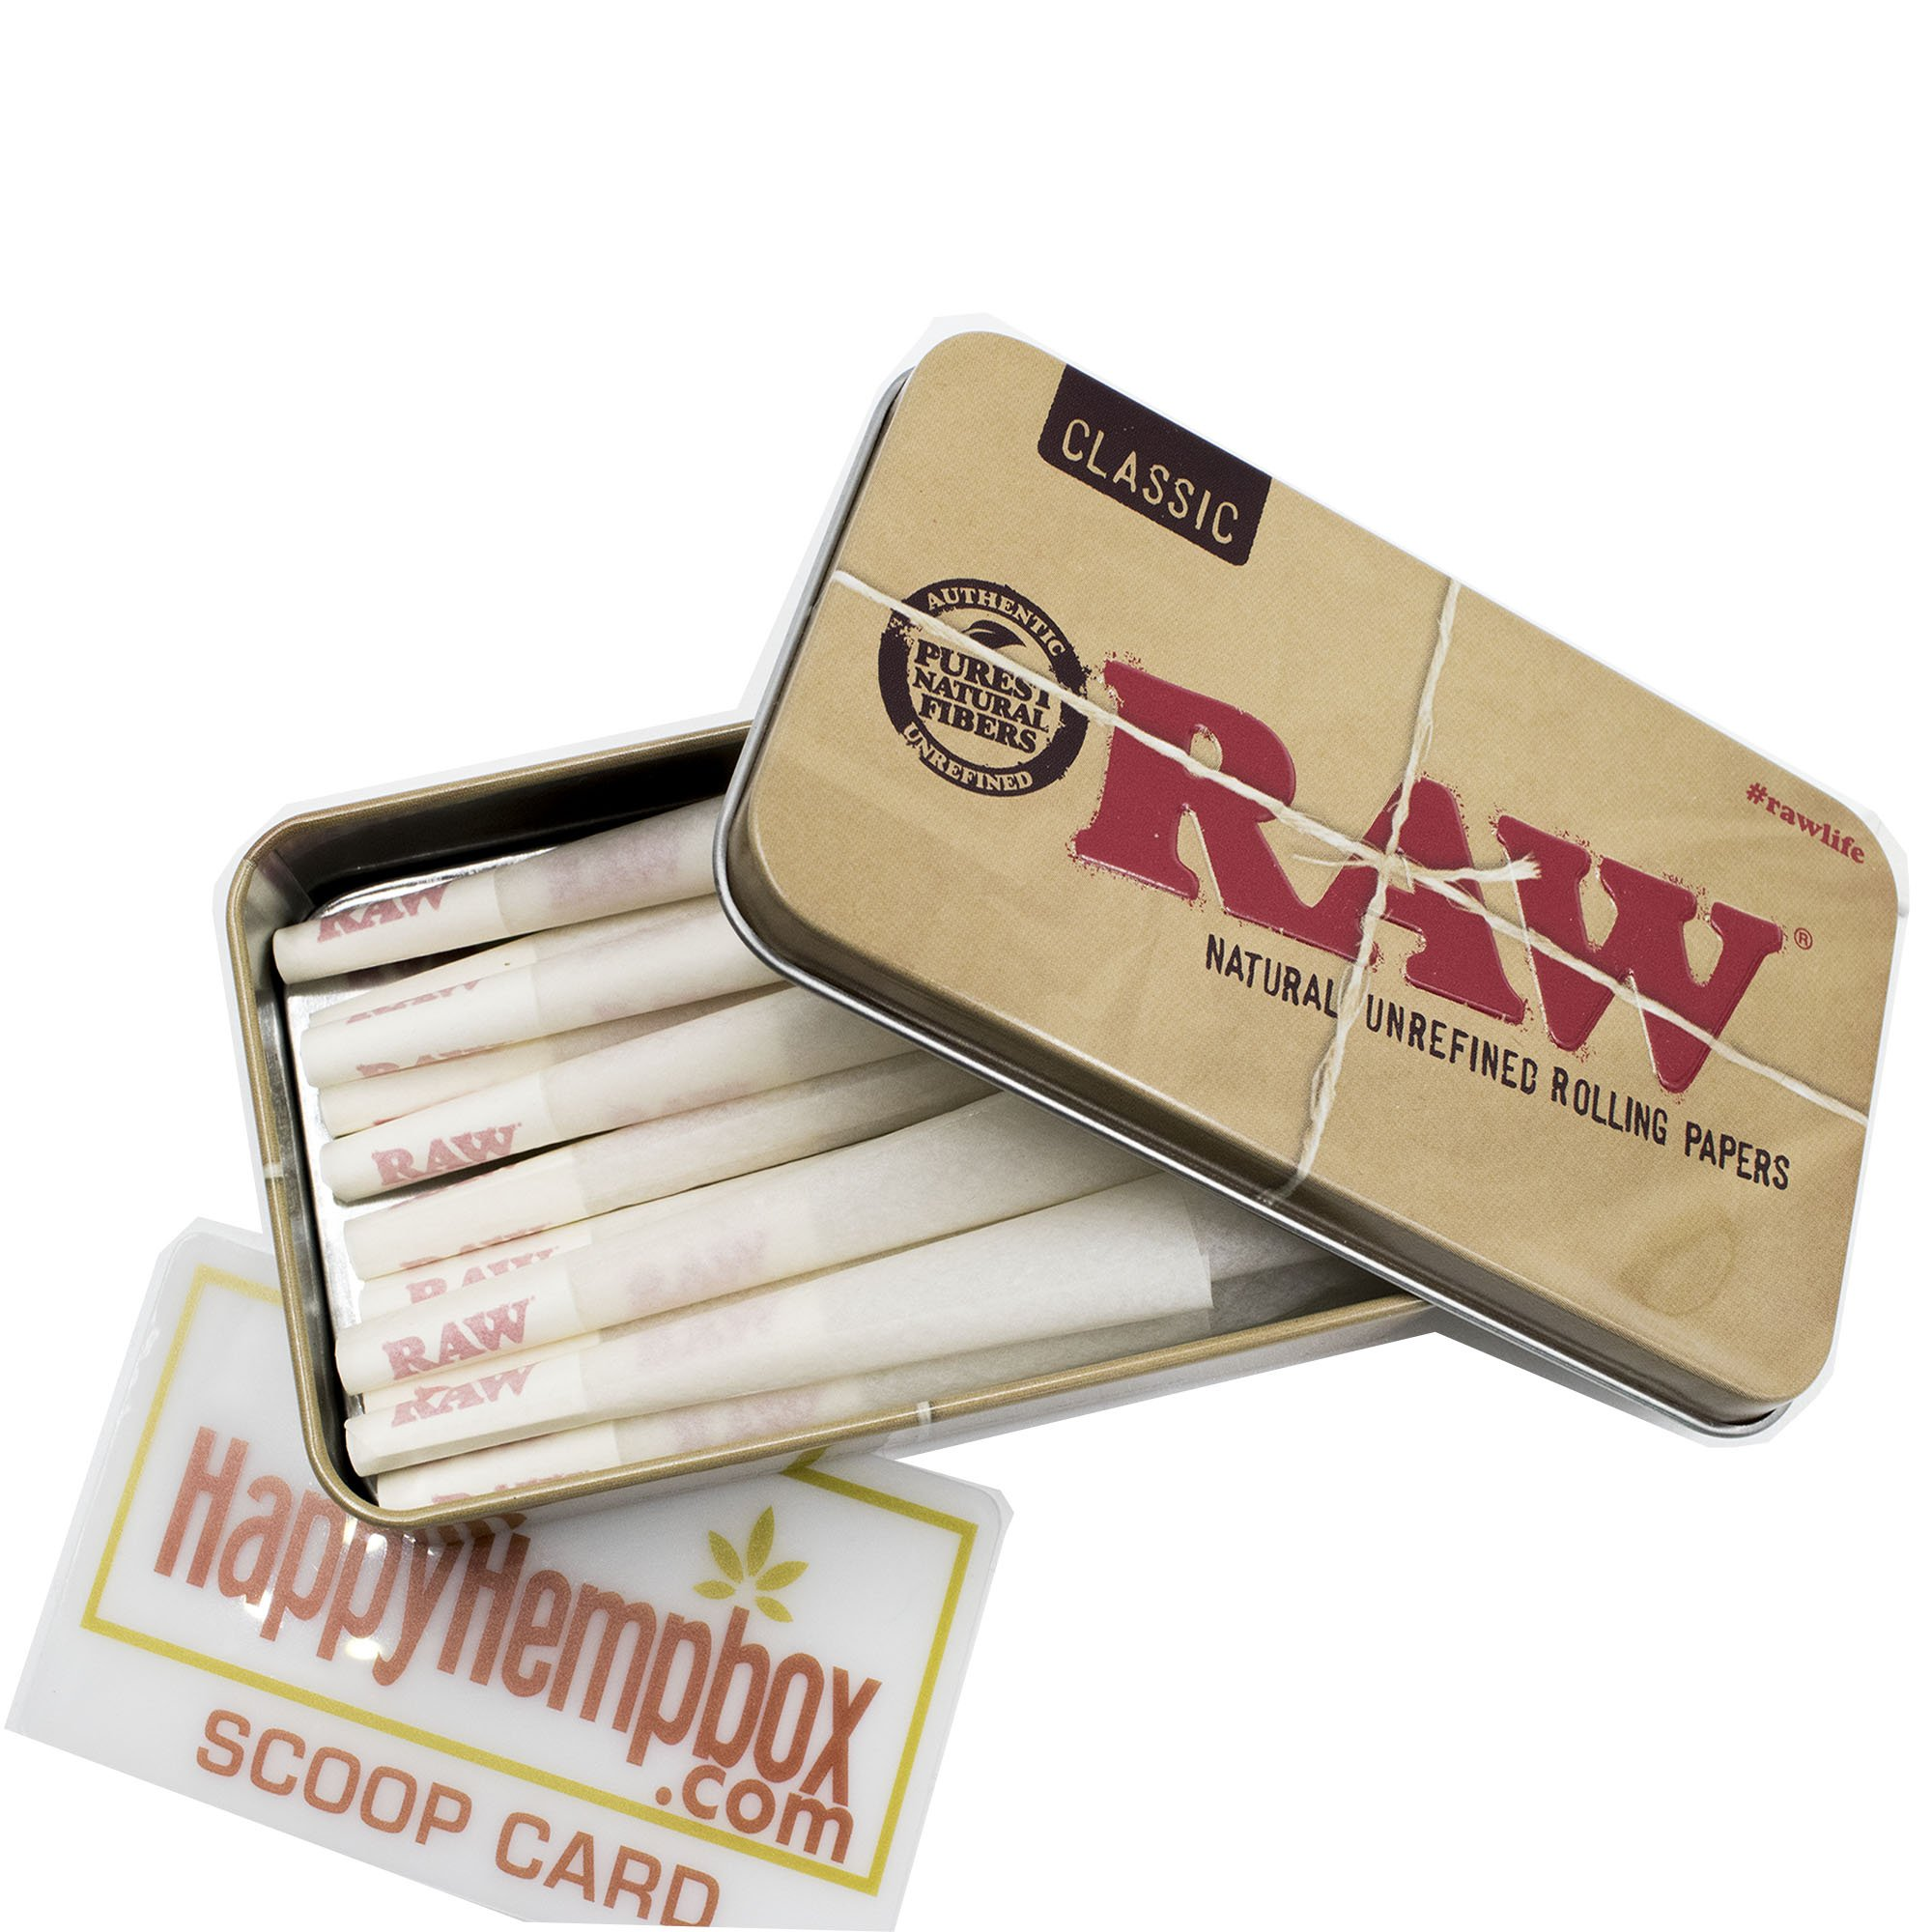 25 Raw 1 1/4 Size Organic Cones With Raw Tin Carrying Case with HHB Scoop Card by RAW